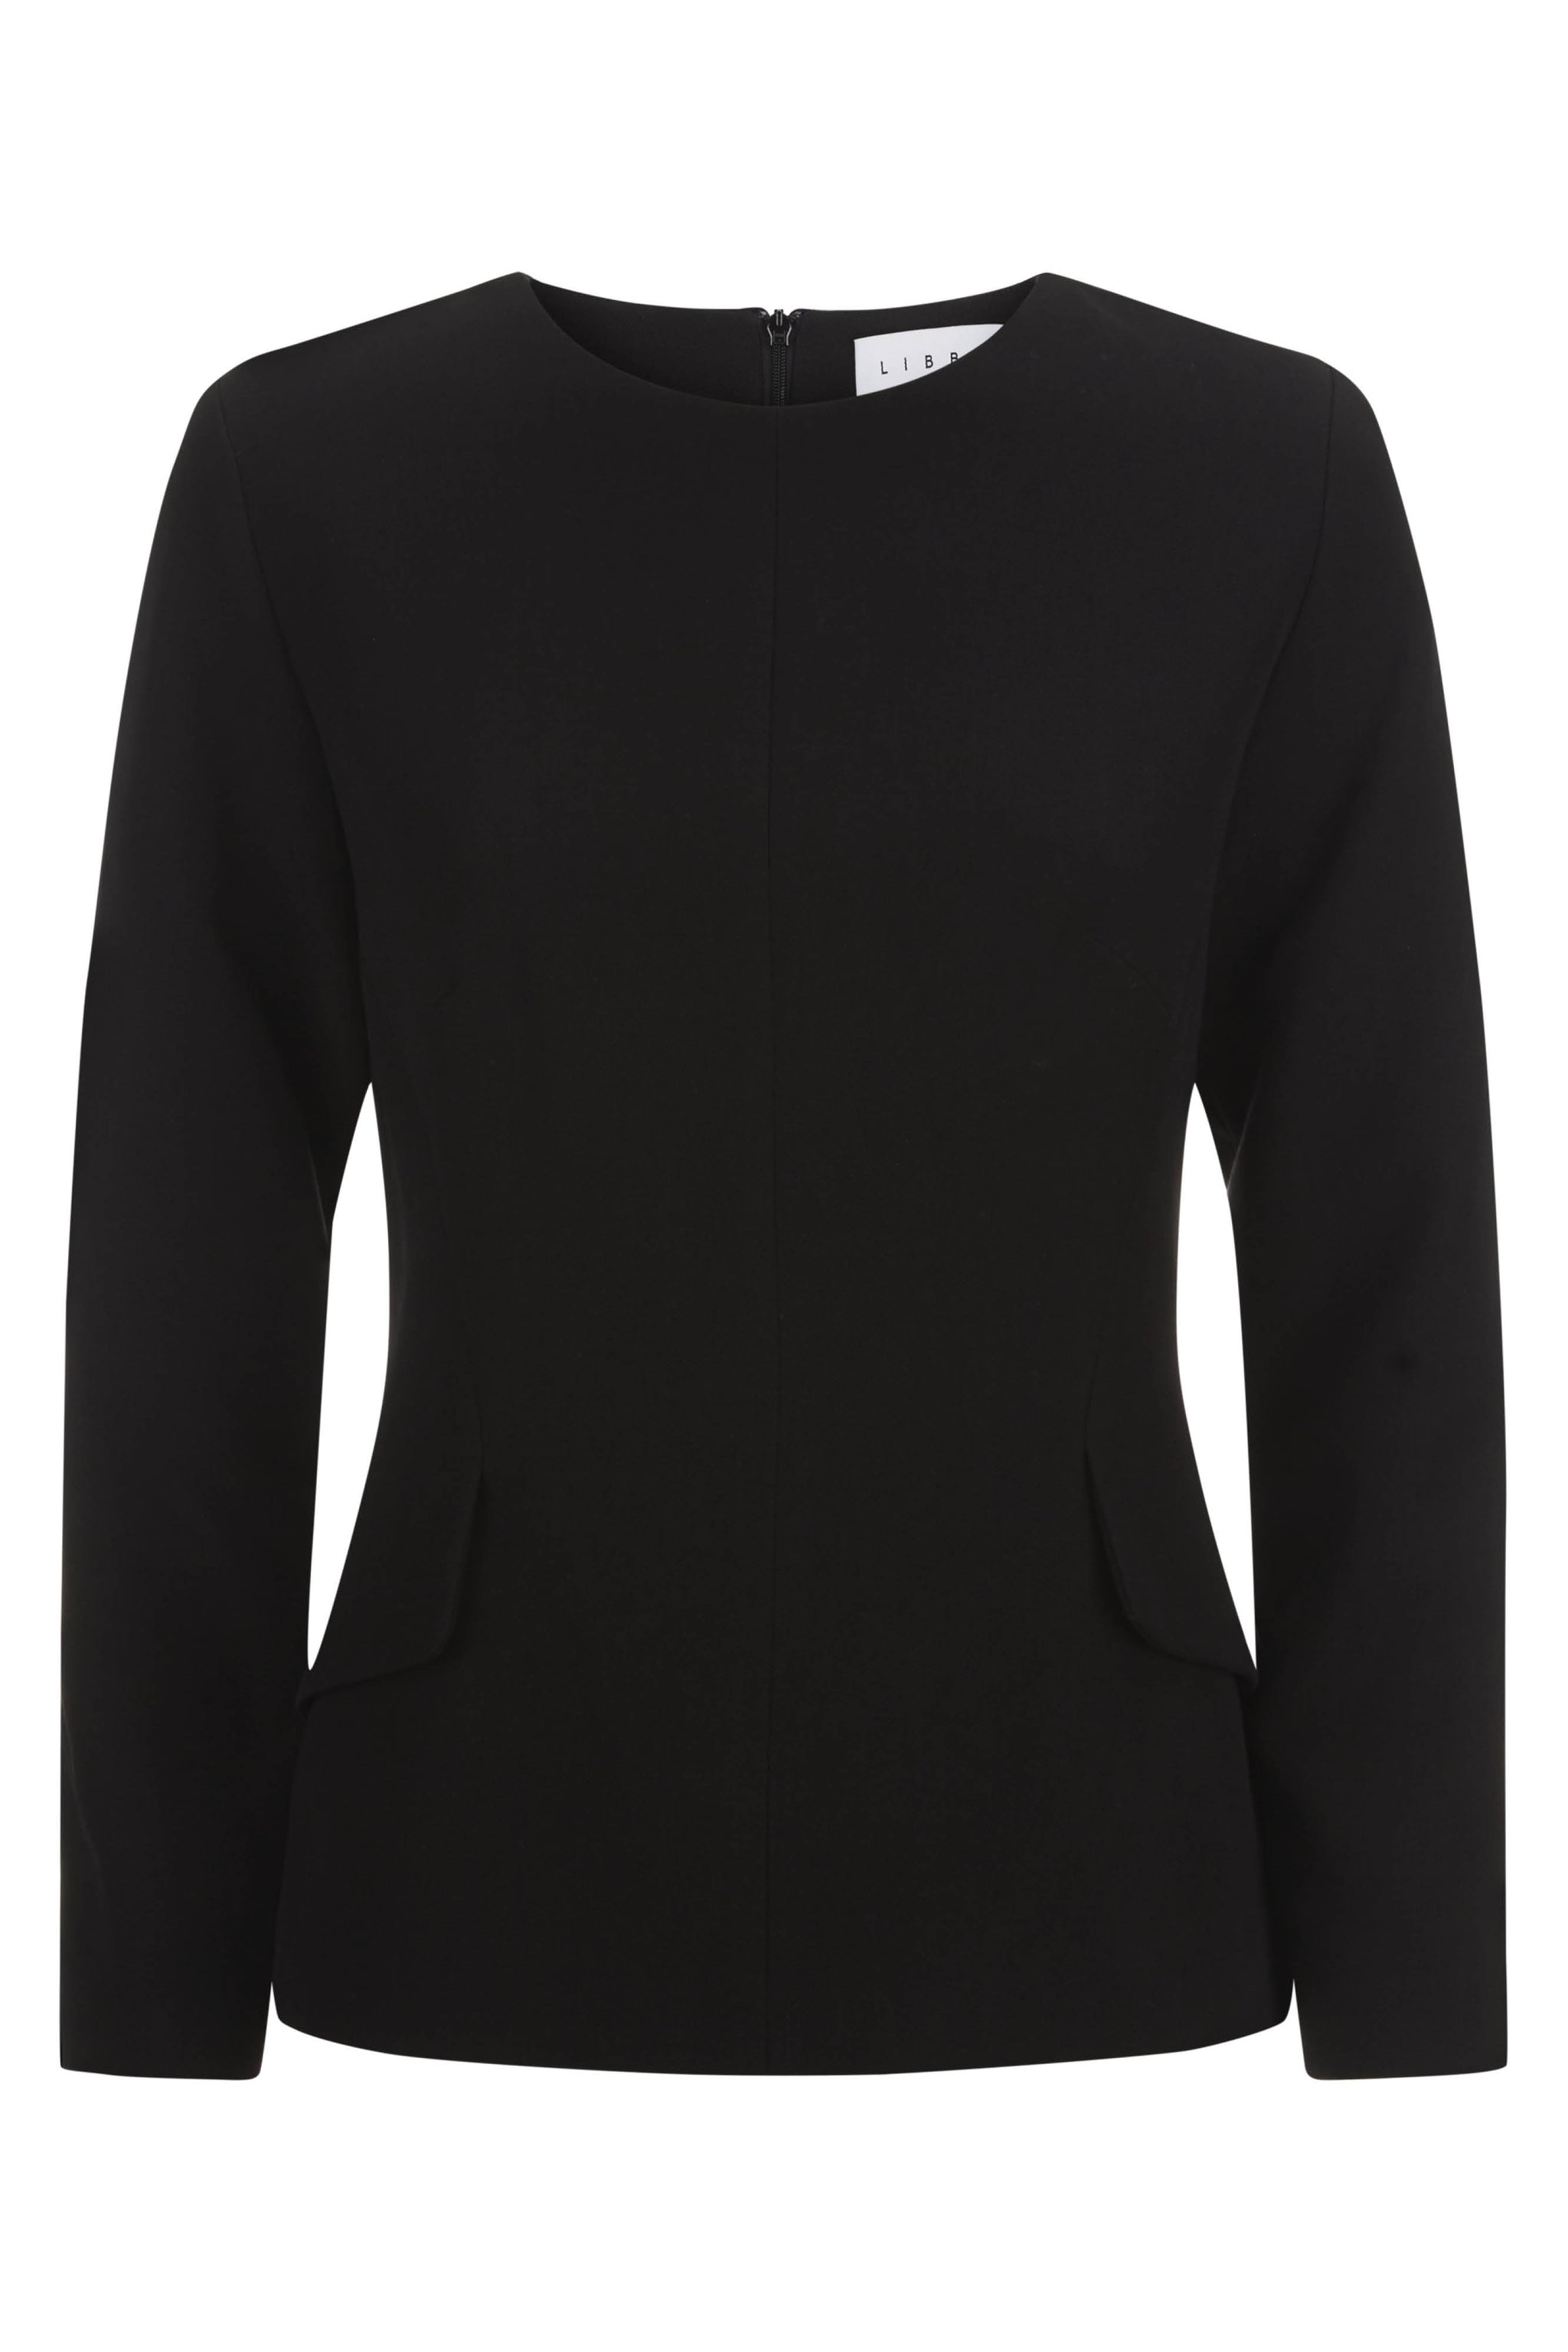 Wellington Black Suiting Top